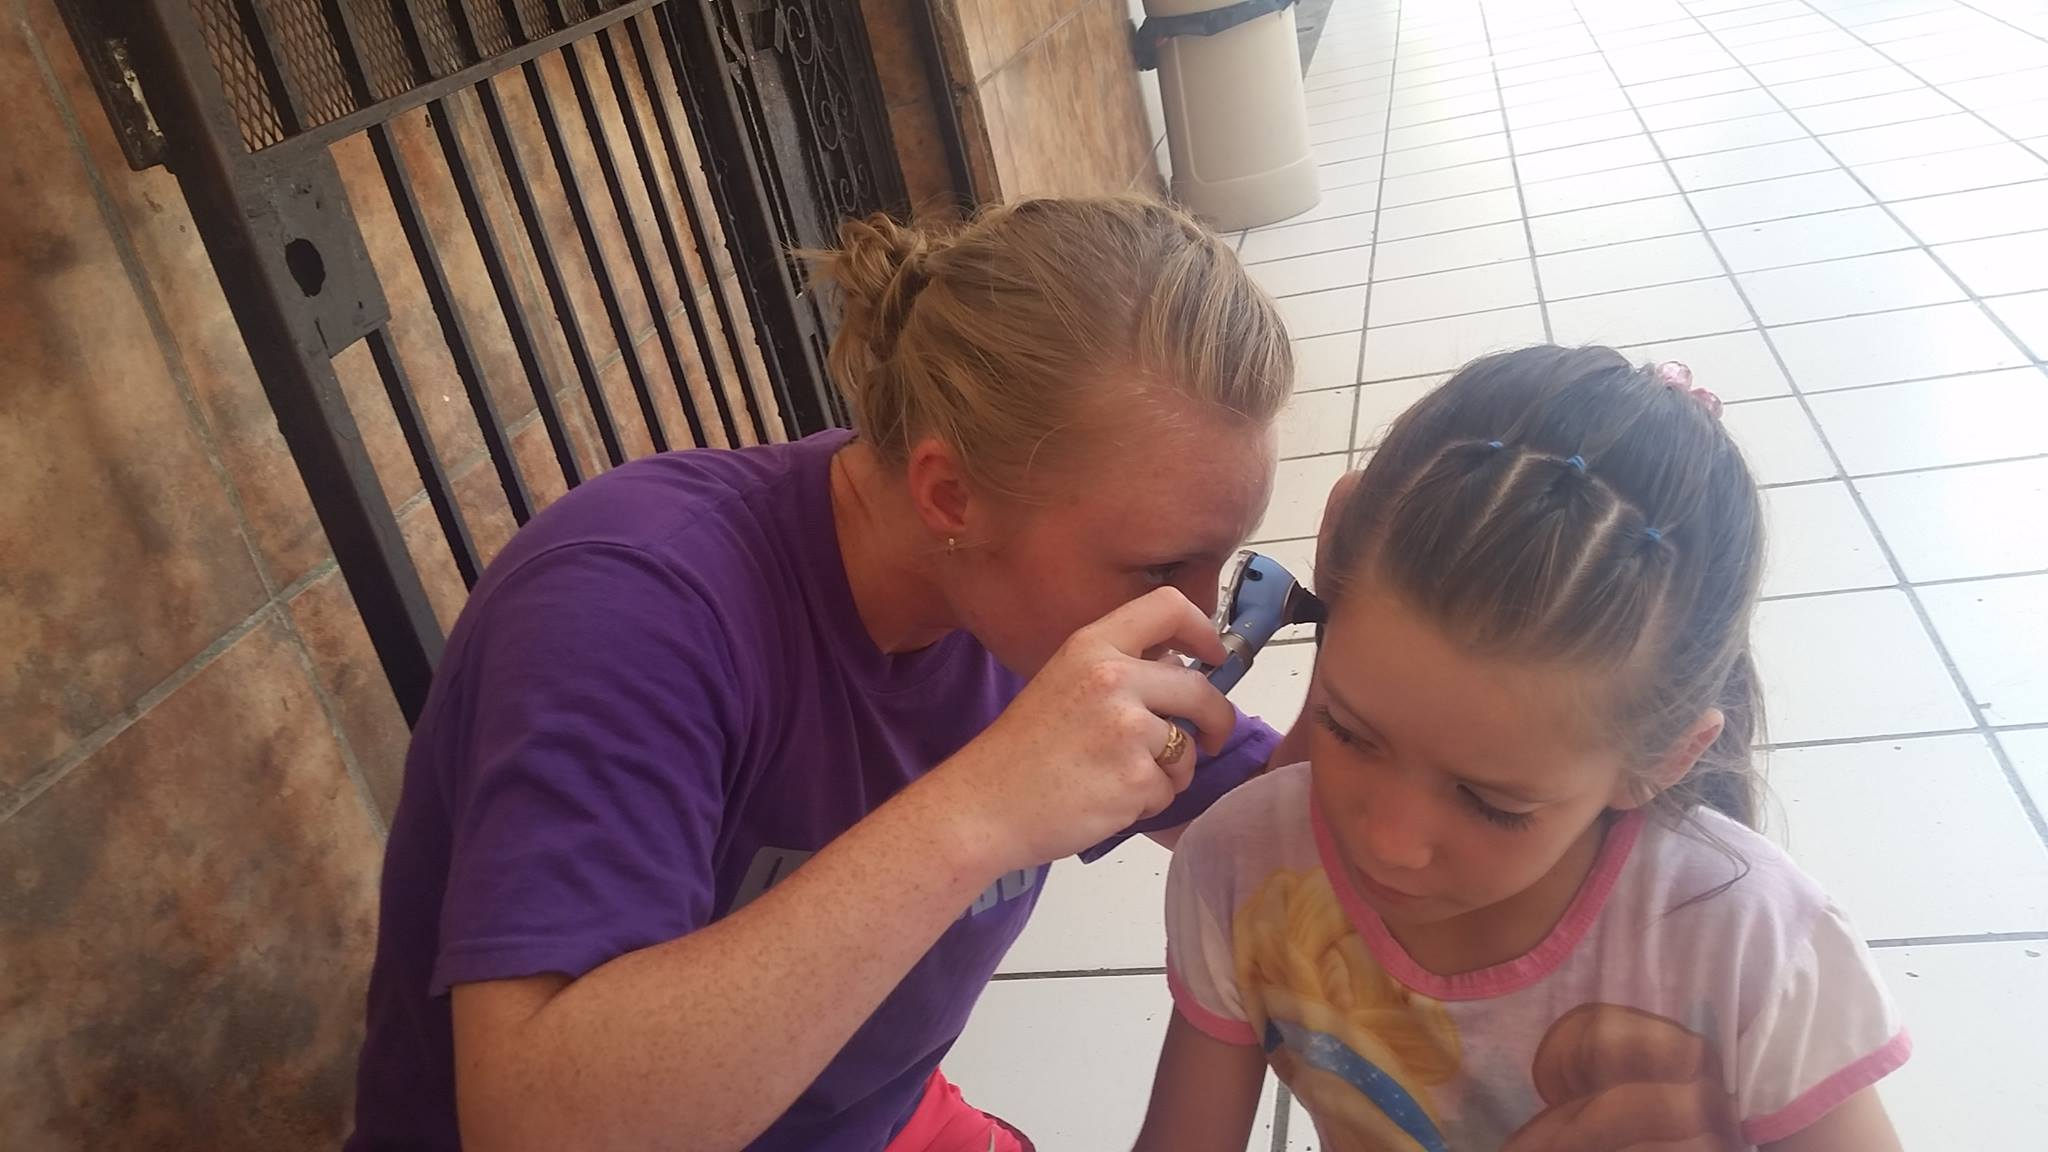 Mackenzie uses otoscope